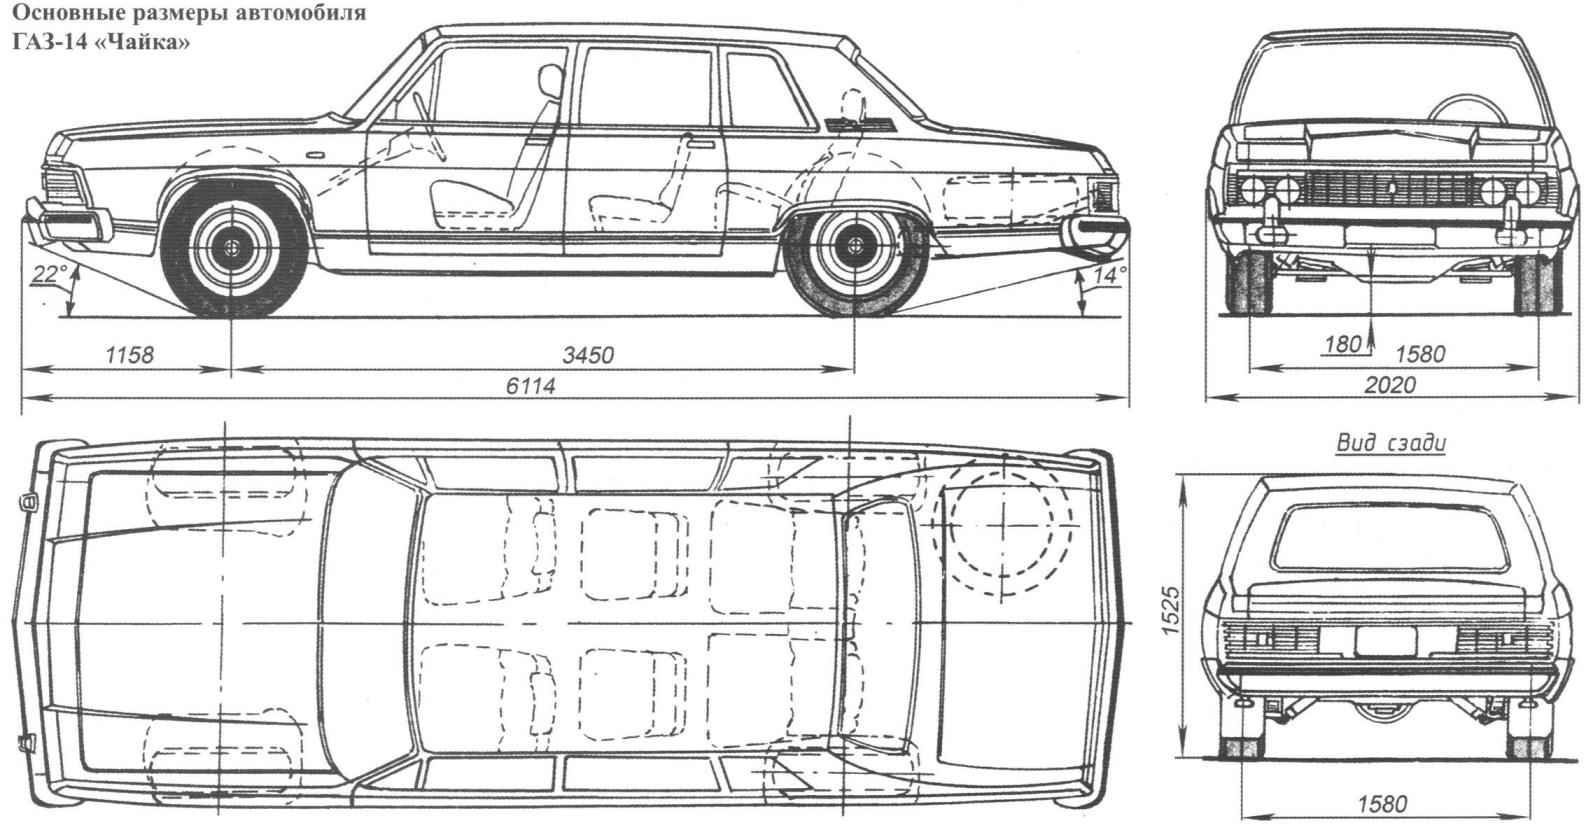 Basic dimensions of the GAZ-14